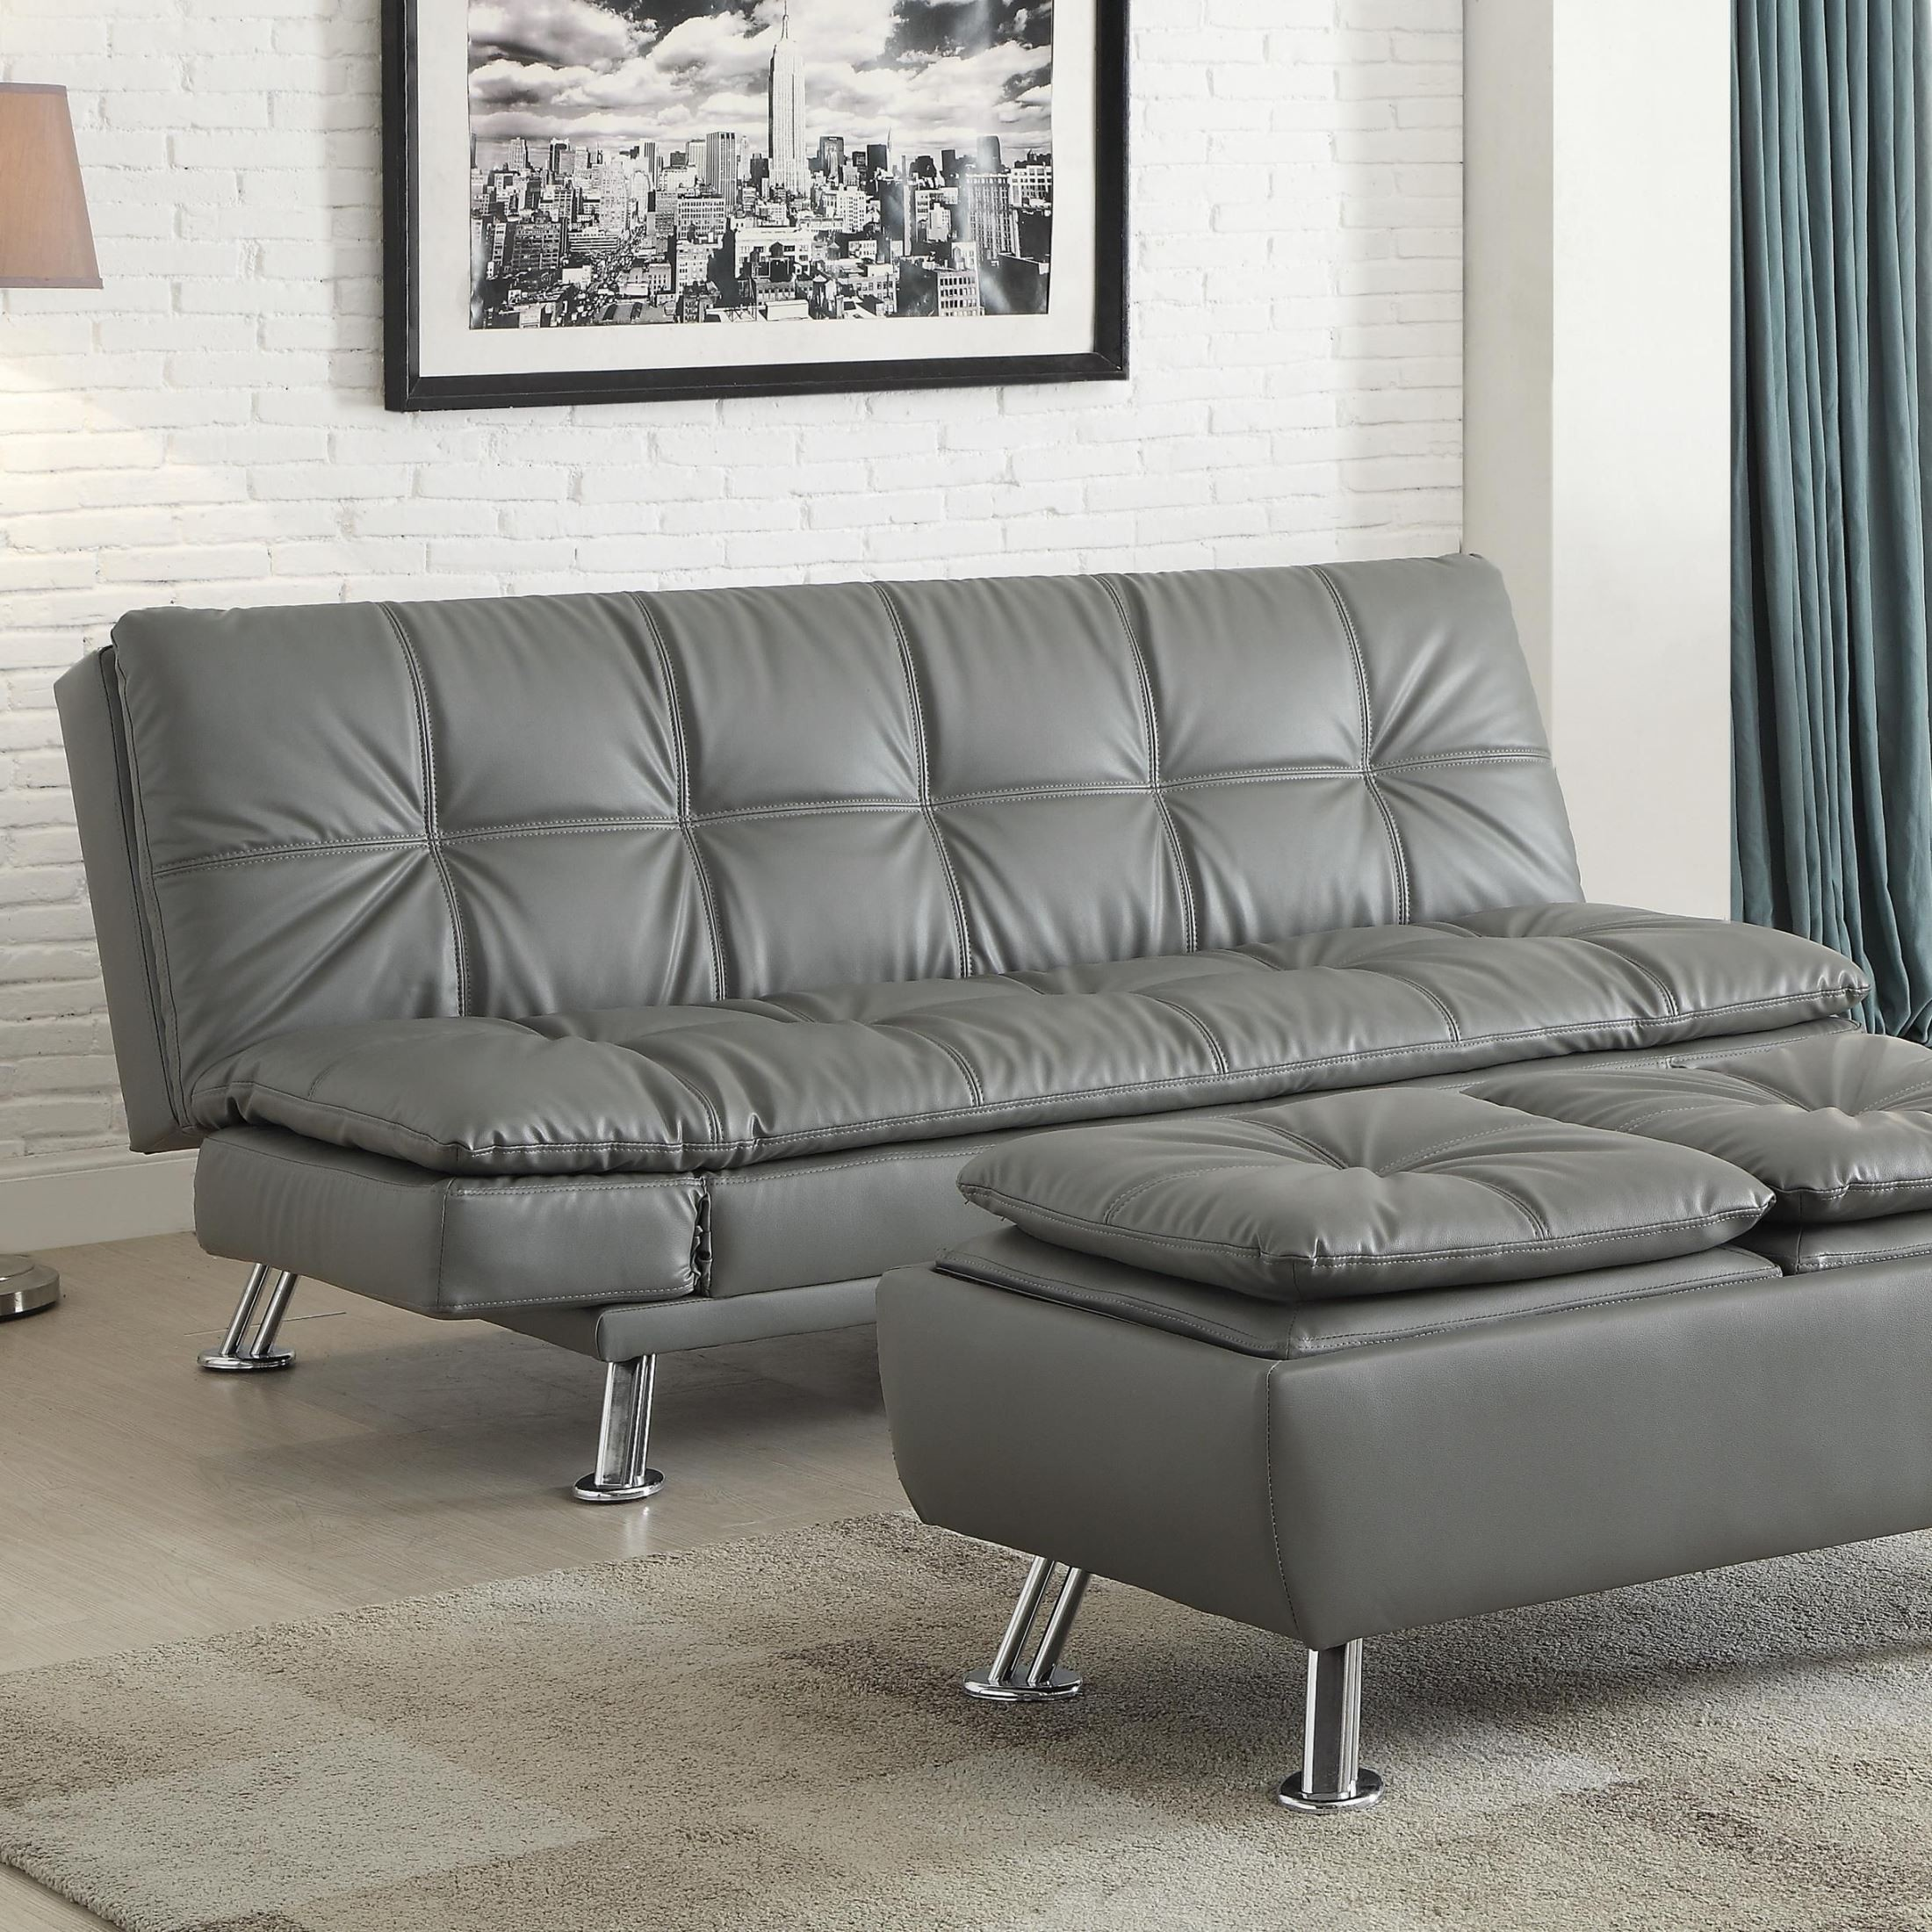 Coaster Furniture 606292 Dilleston Futon Style Living Room Set606069